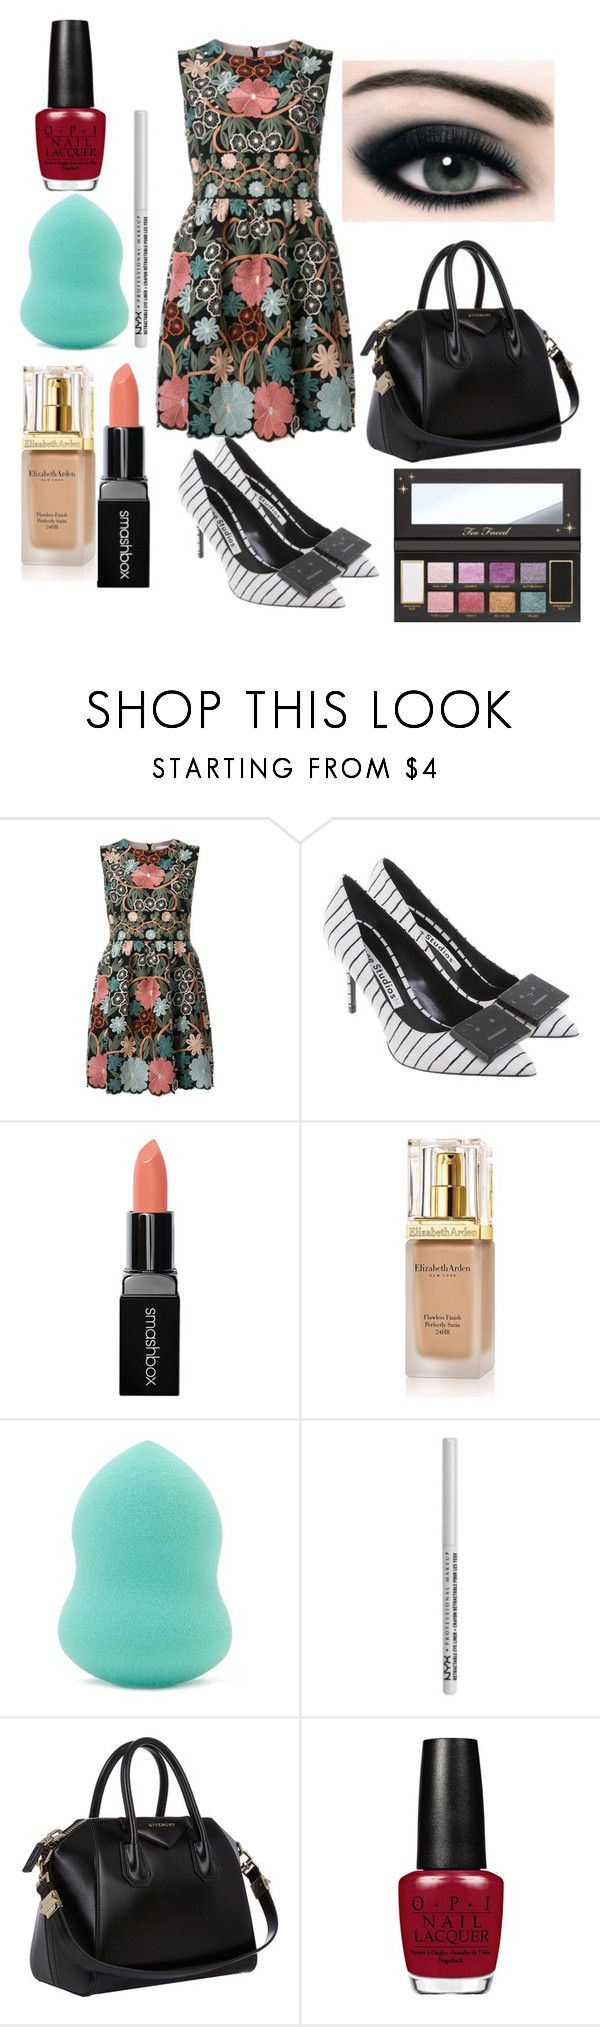 """""""Makeup Face"""" by rabiaheart on Polyvore featuring RED Valentino, Acne Studios, Smashbox, Elizabeth Arden, Forever 21, NYX and Givenchy"""